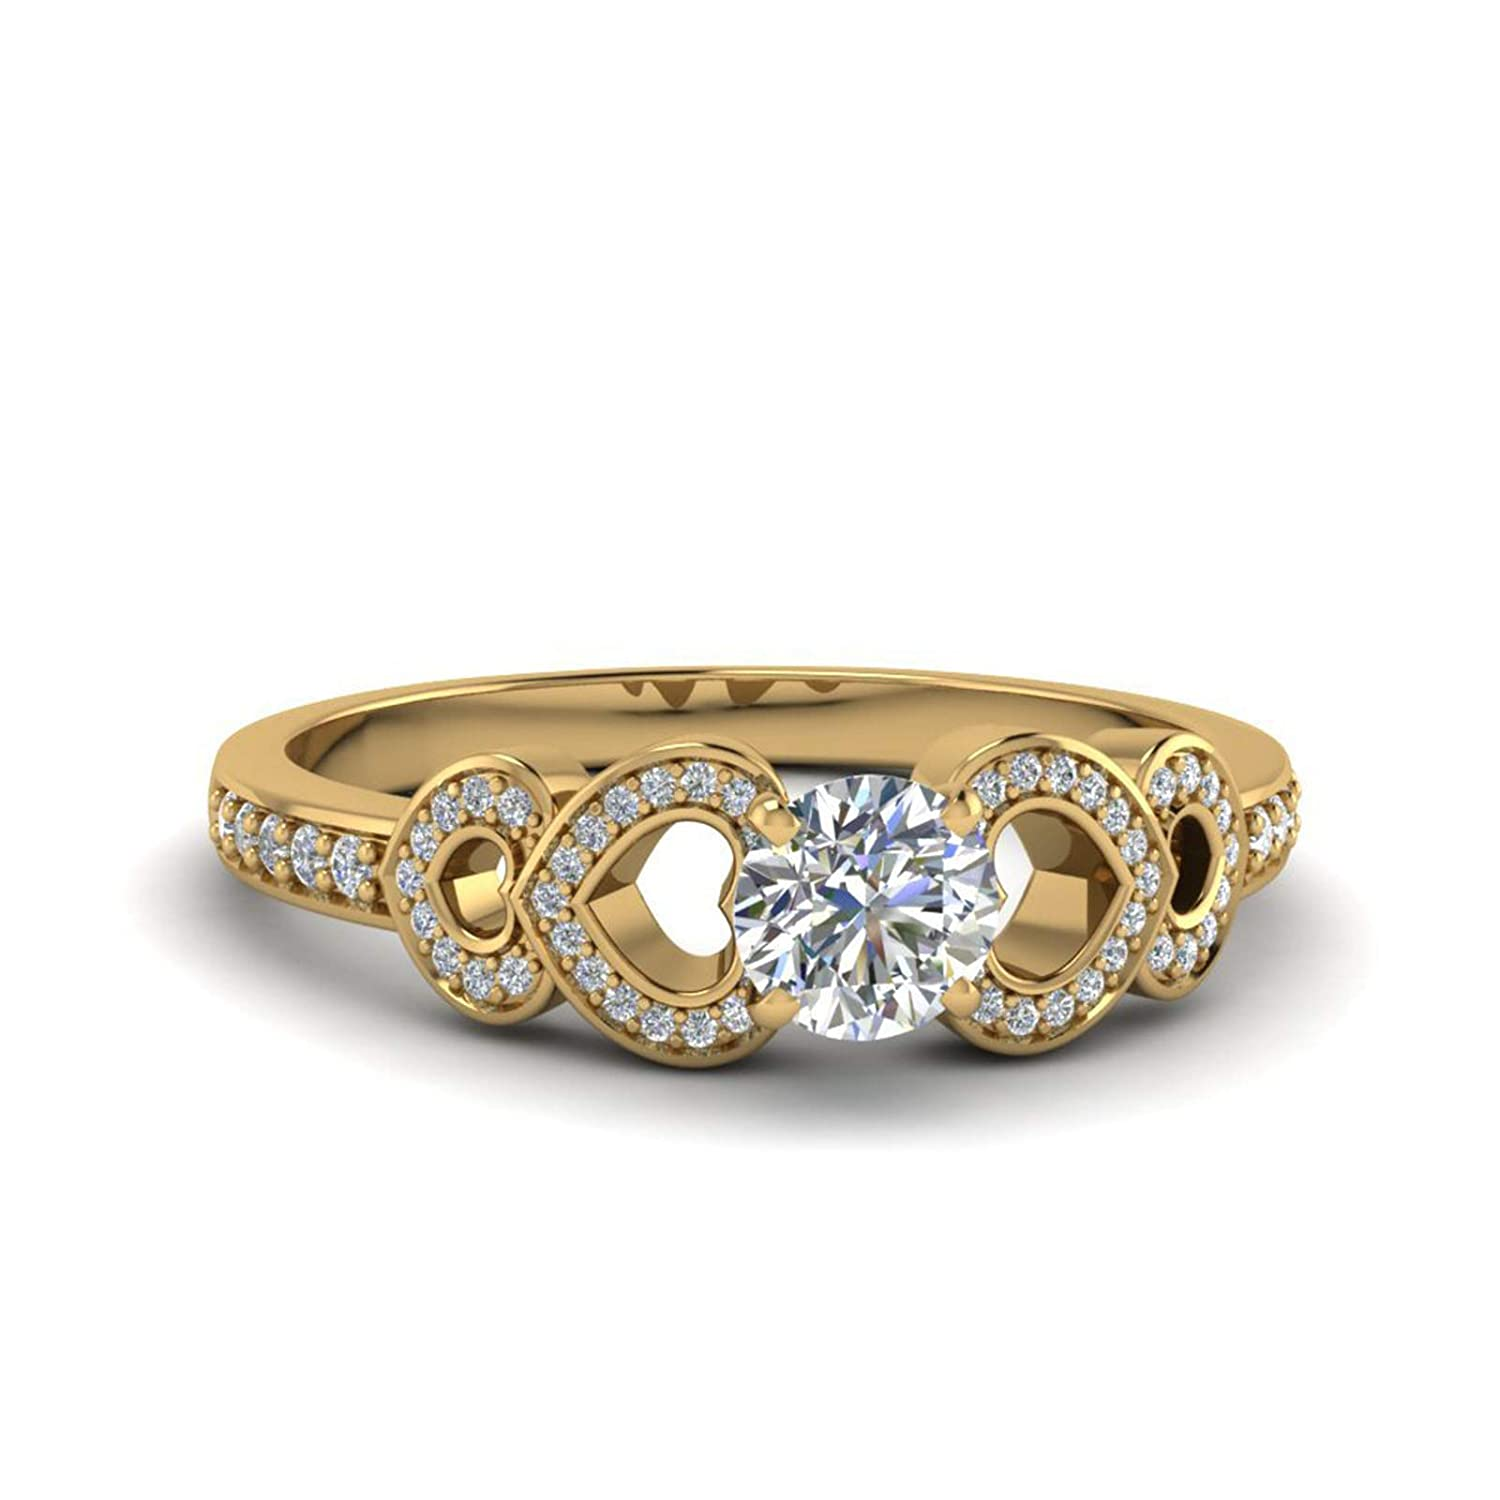 Engagement Wedding Ring 14K Yellow Gold Fn Alloy /& Simulated Diamond Studded Jewellery